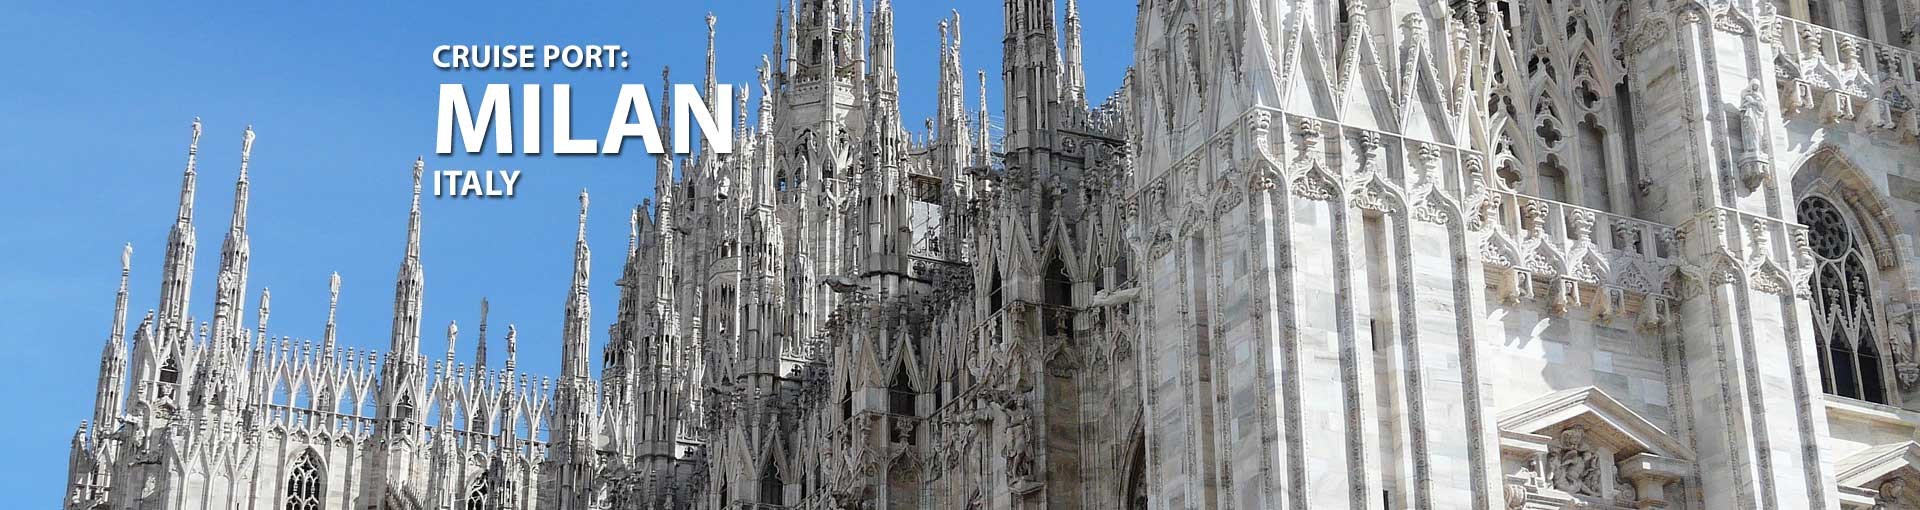 Cruises from Milan, Italy